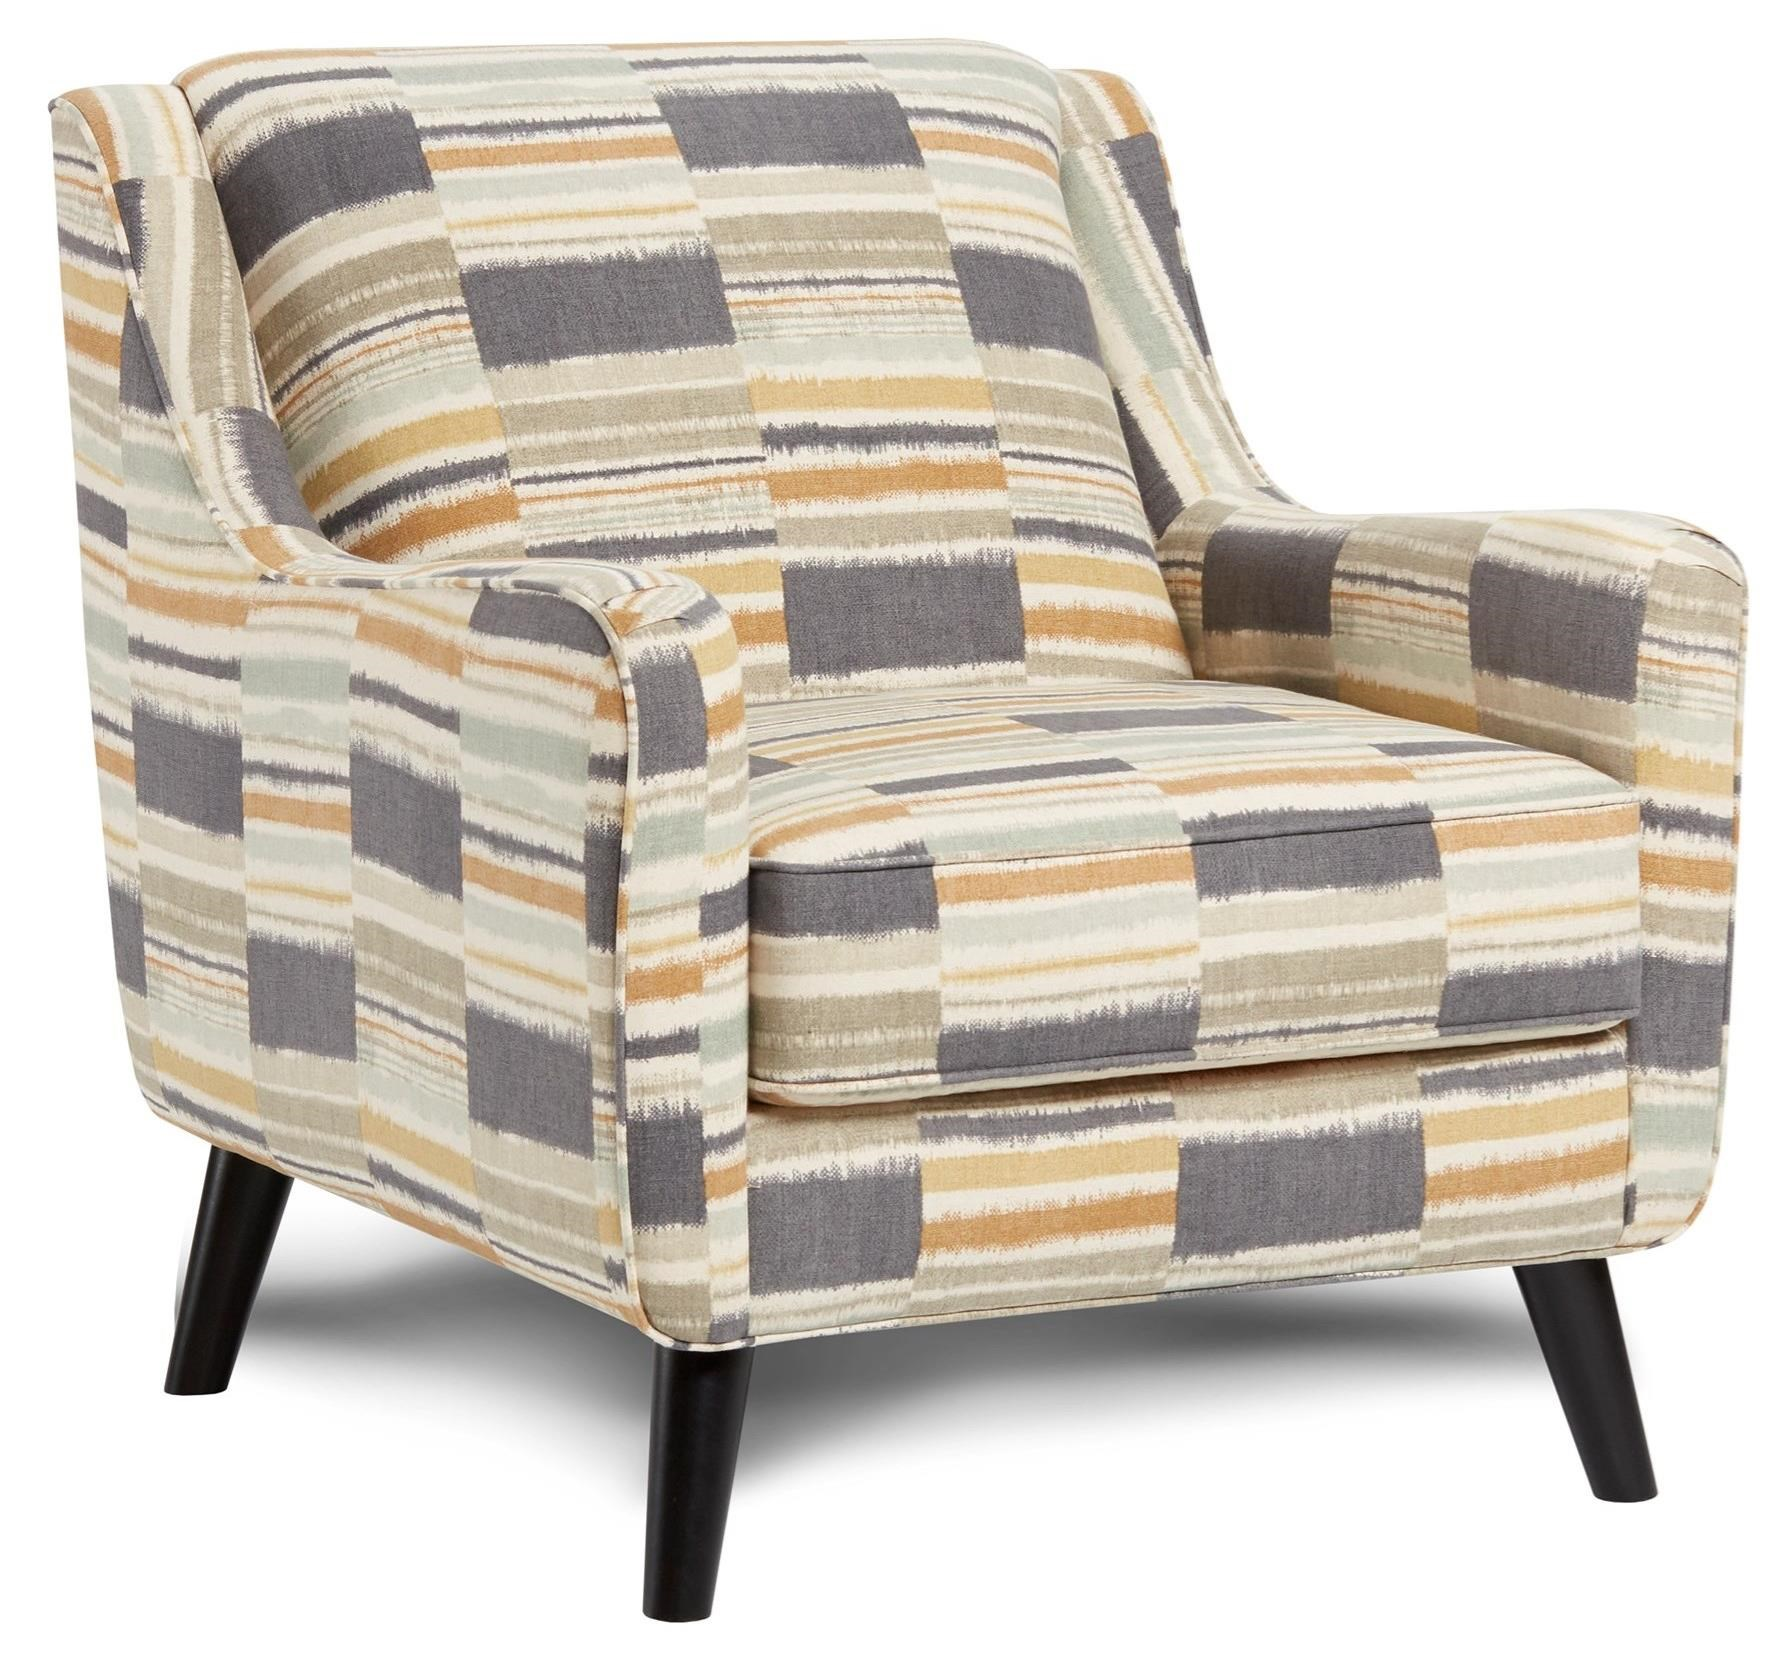 240 Chair by Fusion Furniture at Steger's Furniture